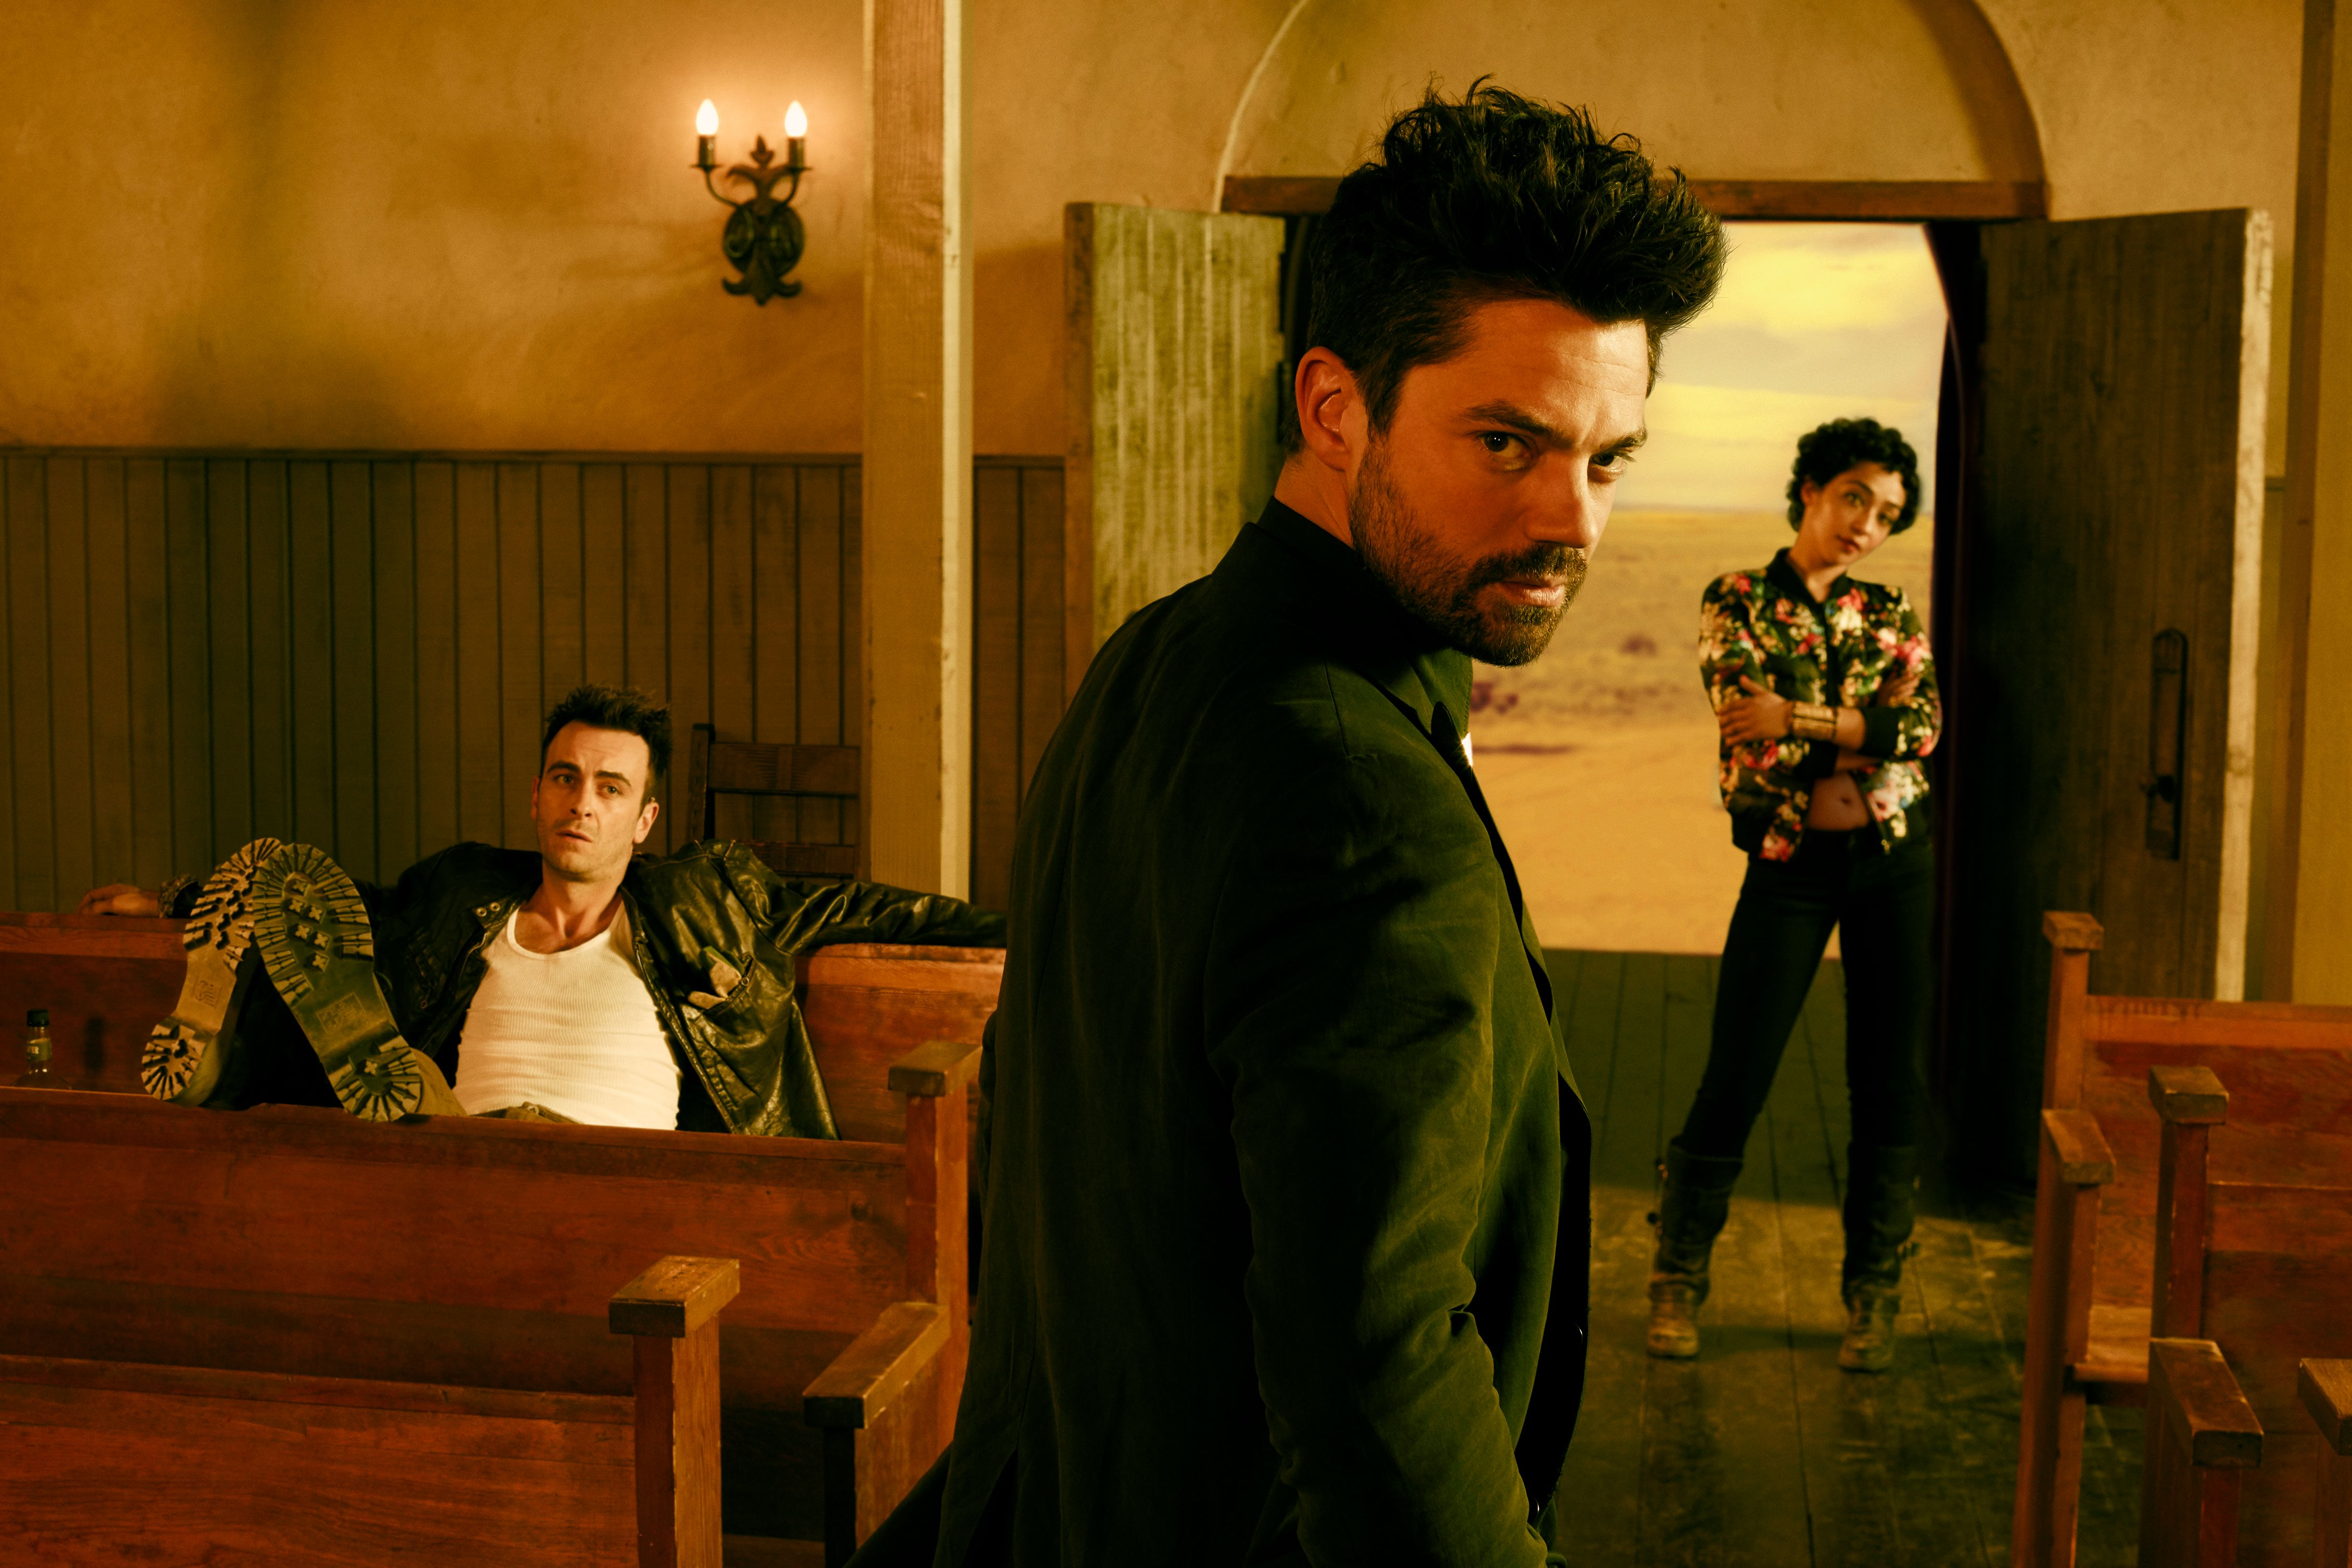 Preacher Series Featurettes Introduce Characters and Plot | Collider